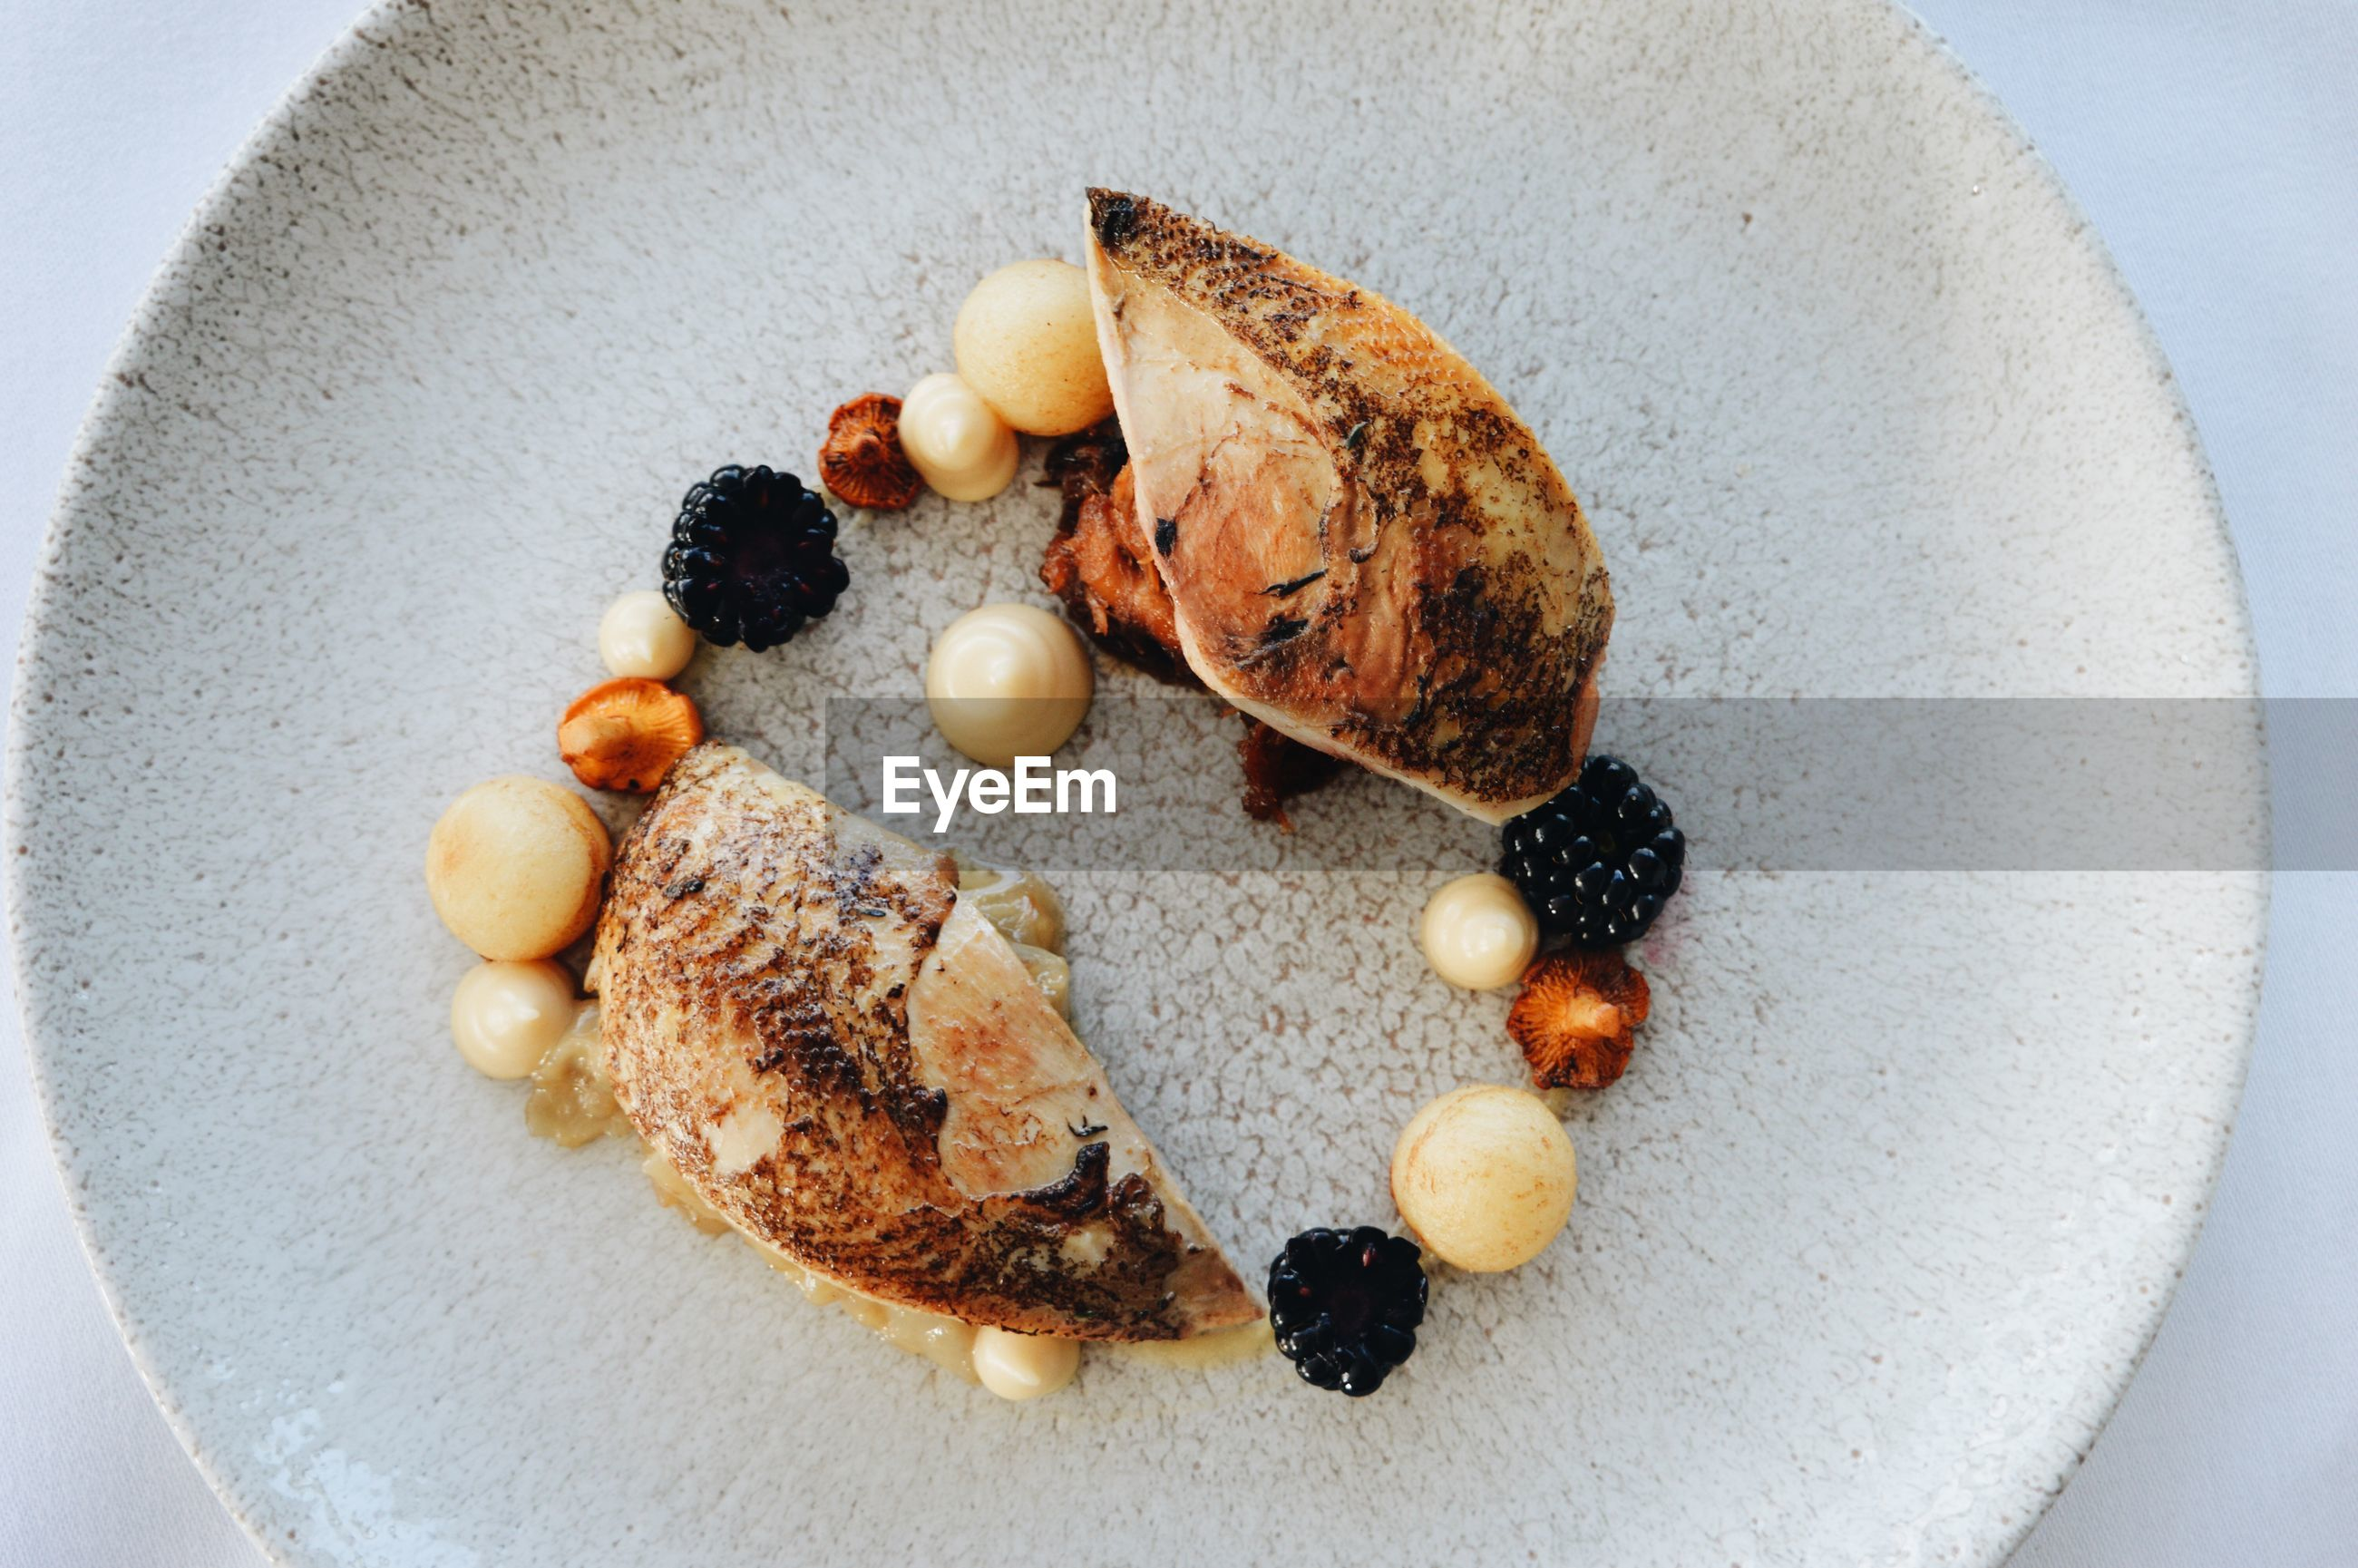 Directly above shot of food in plate on table